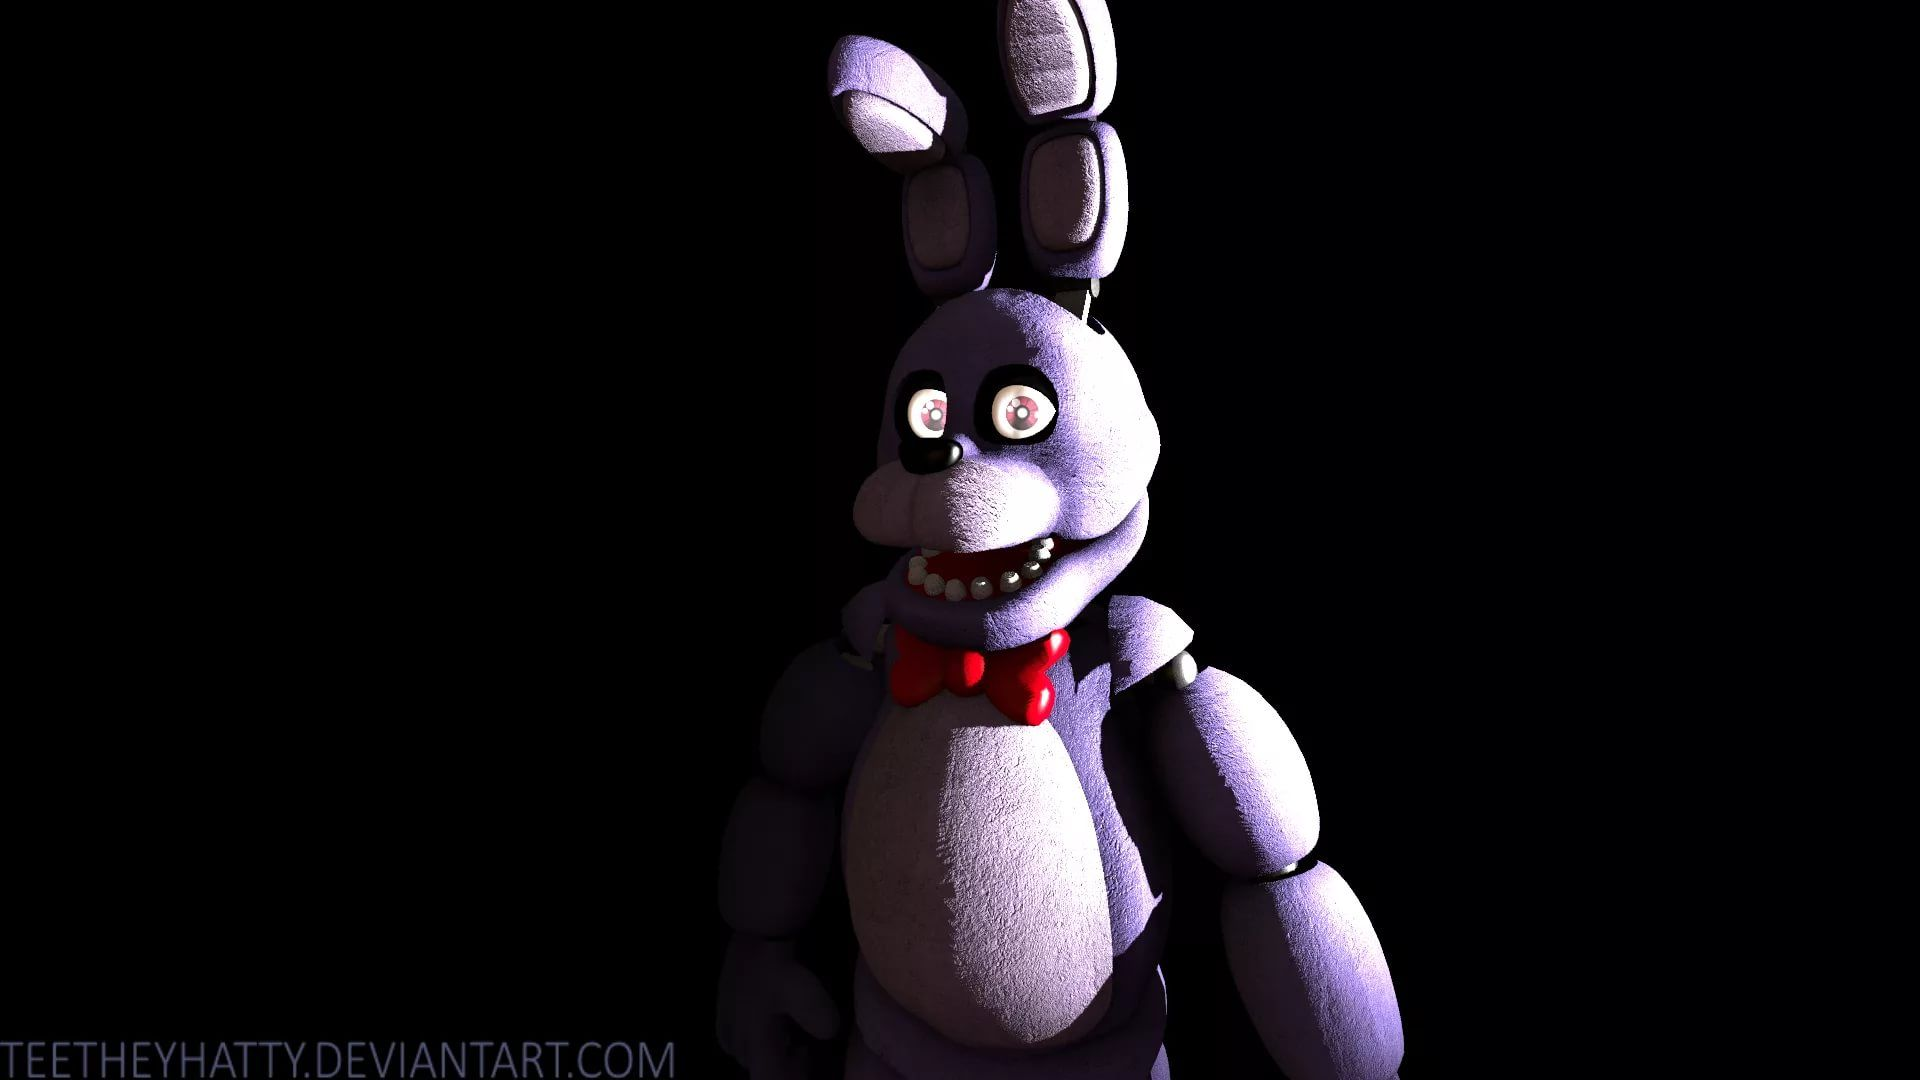 FNAF Bonnie hd wallpaper download